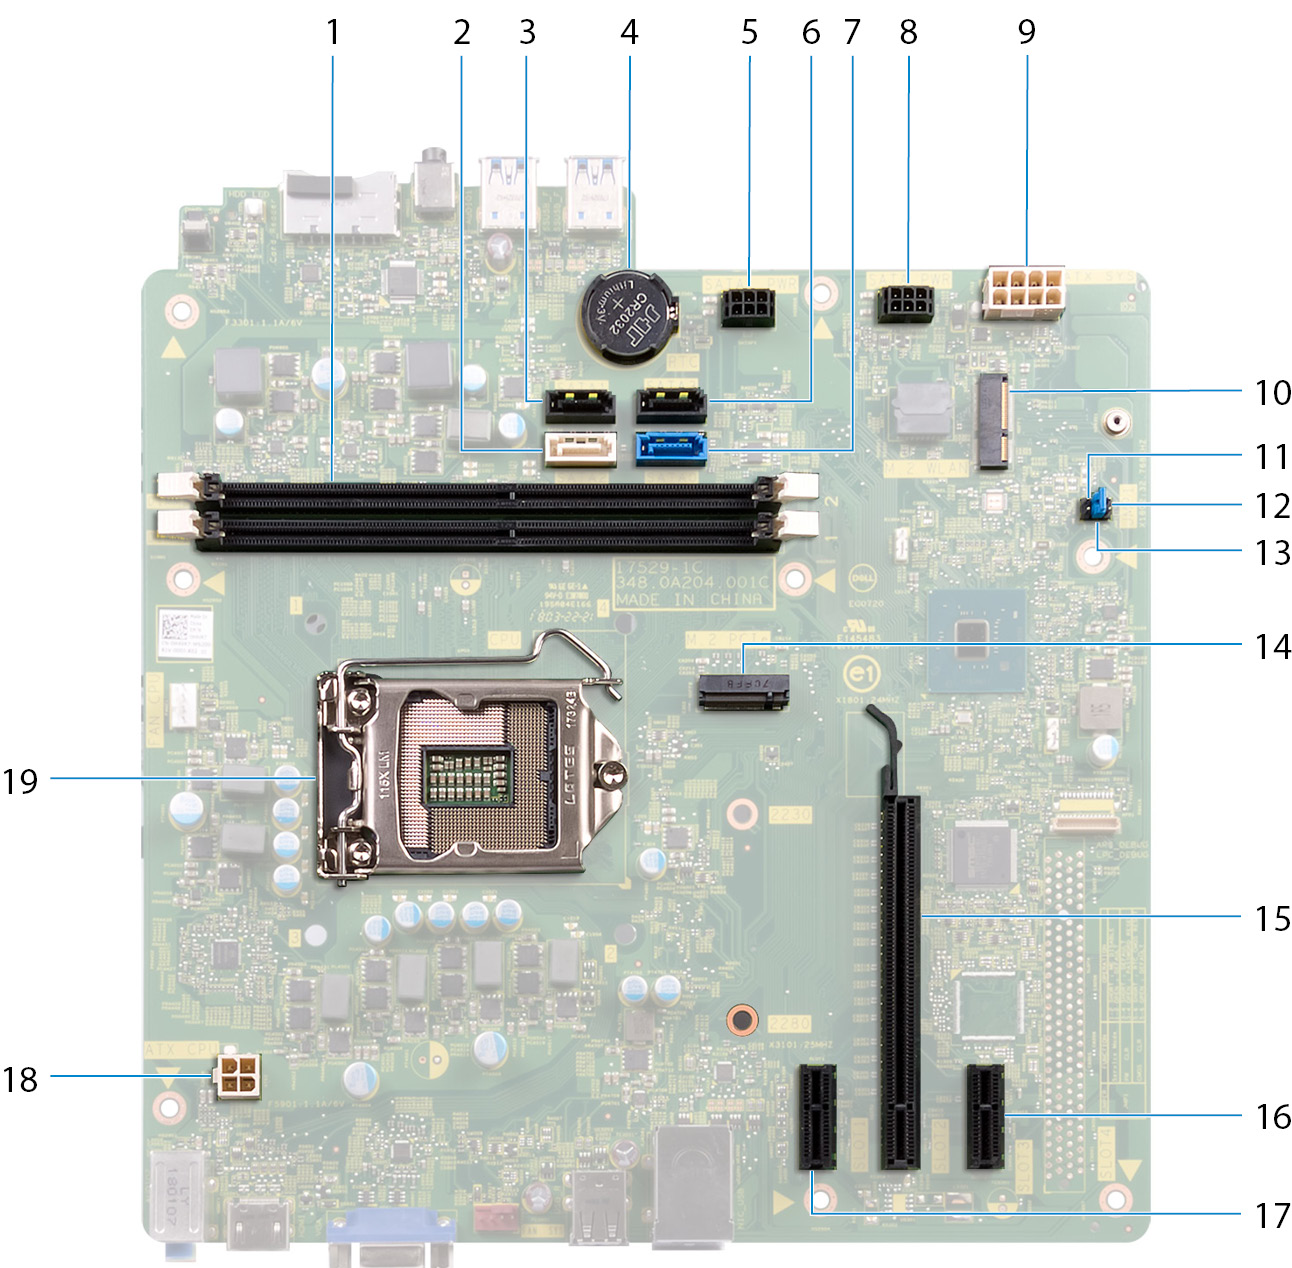 Dell N5110 Motherboard Schematic